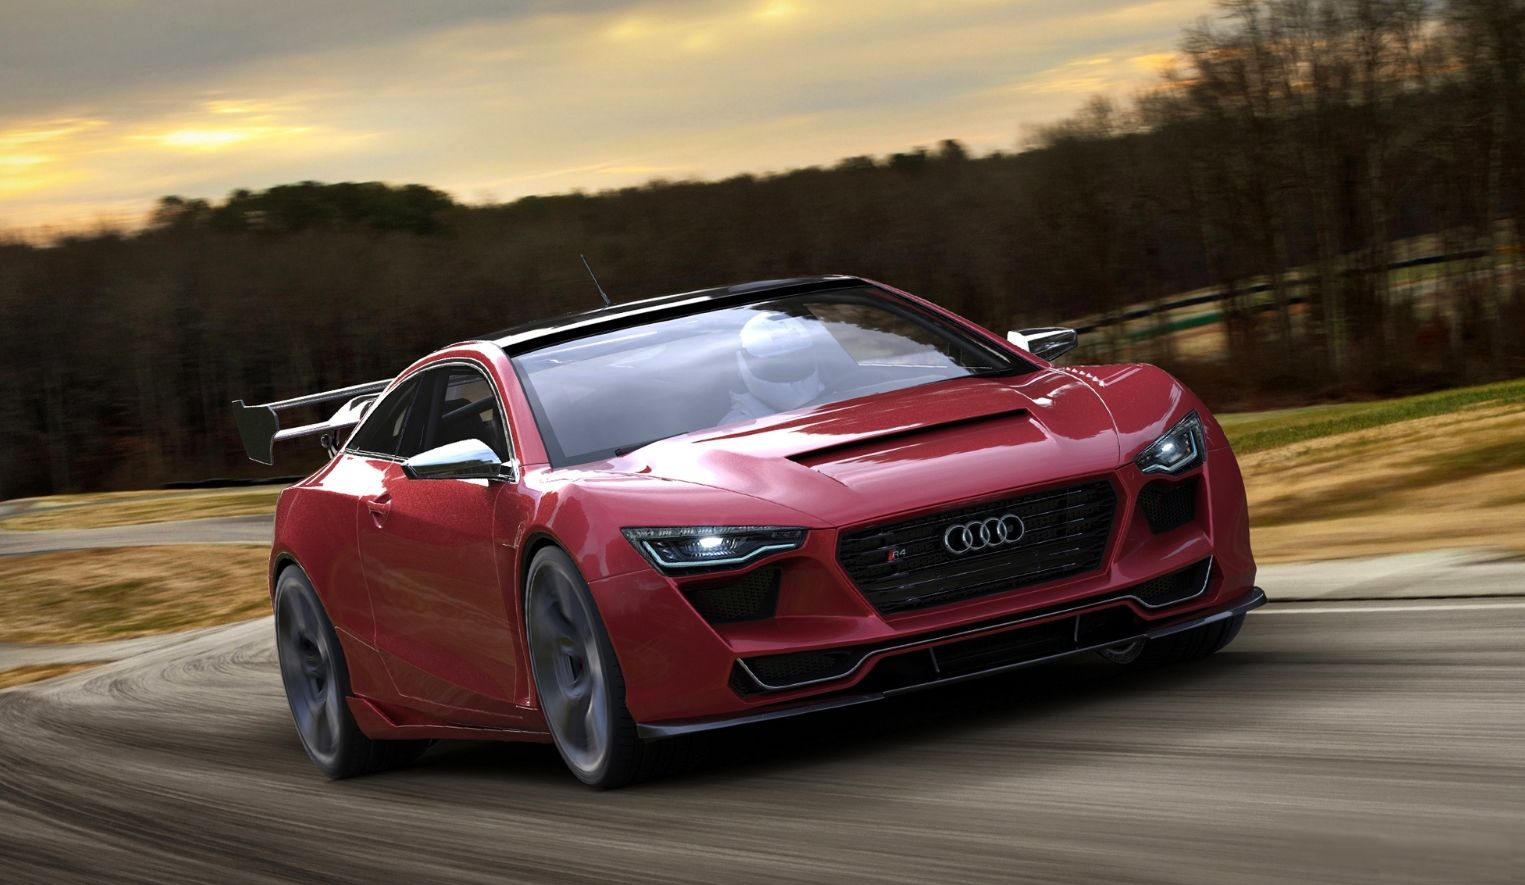 The Audi R4, Concept Car Designed By Rene Garcia! | Cars 5 ...